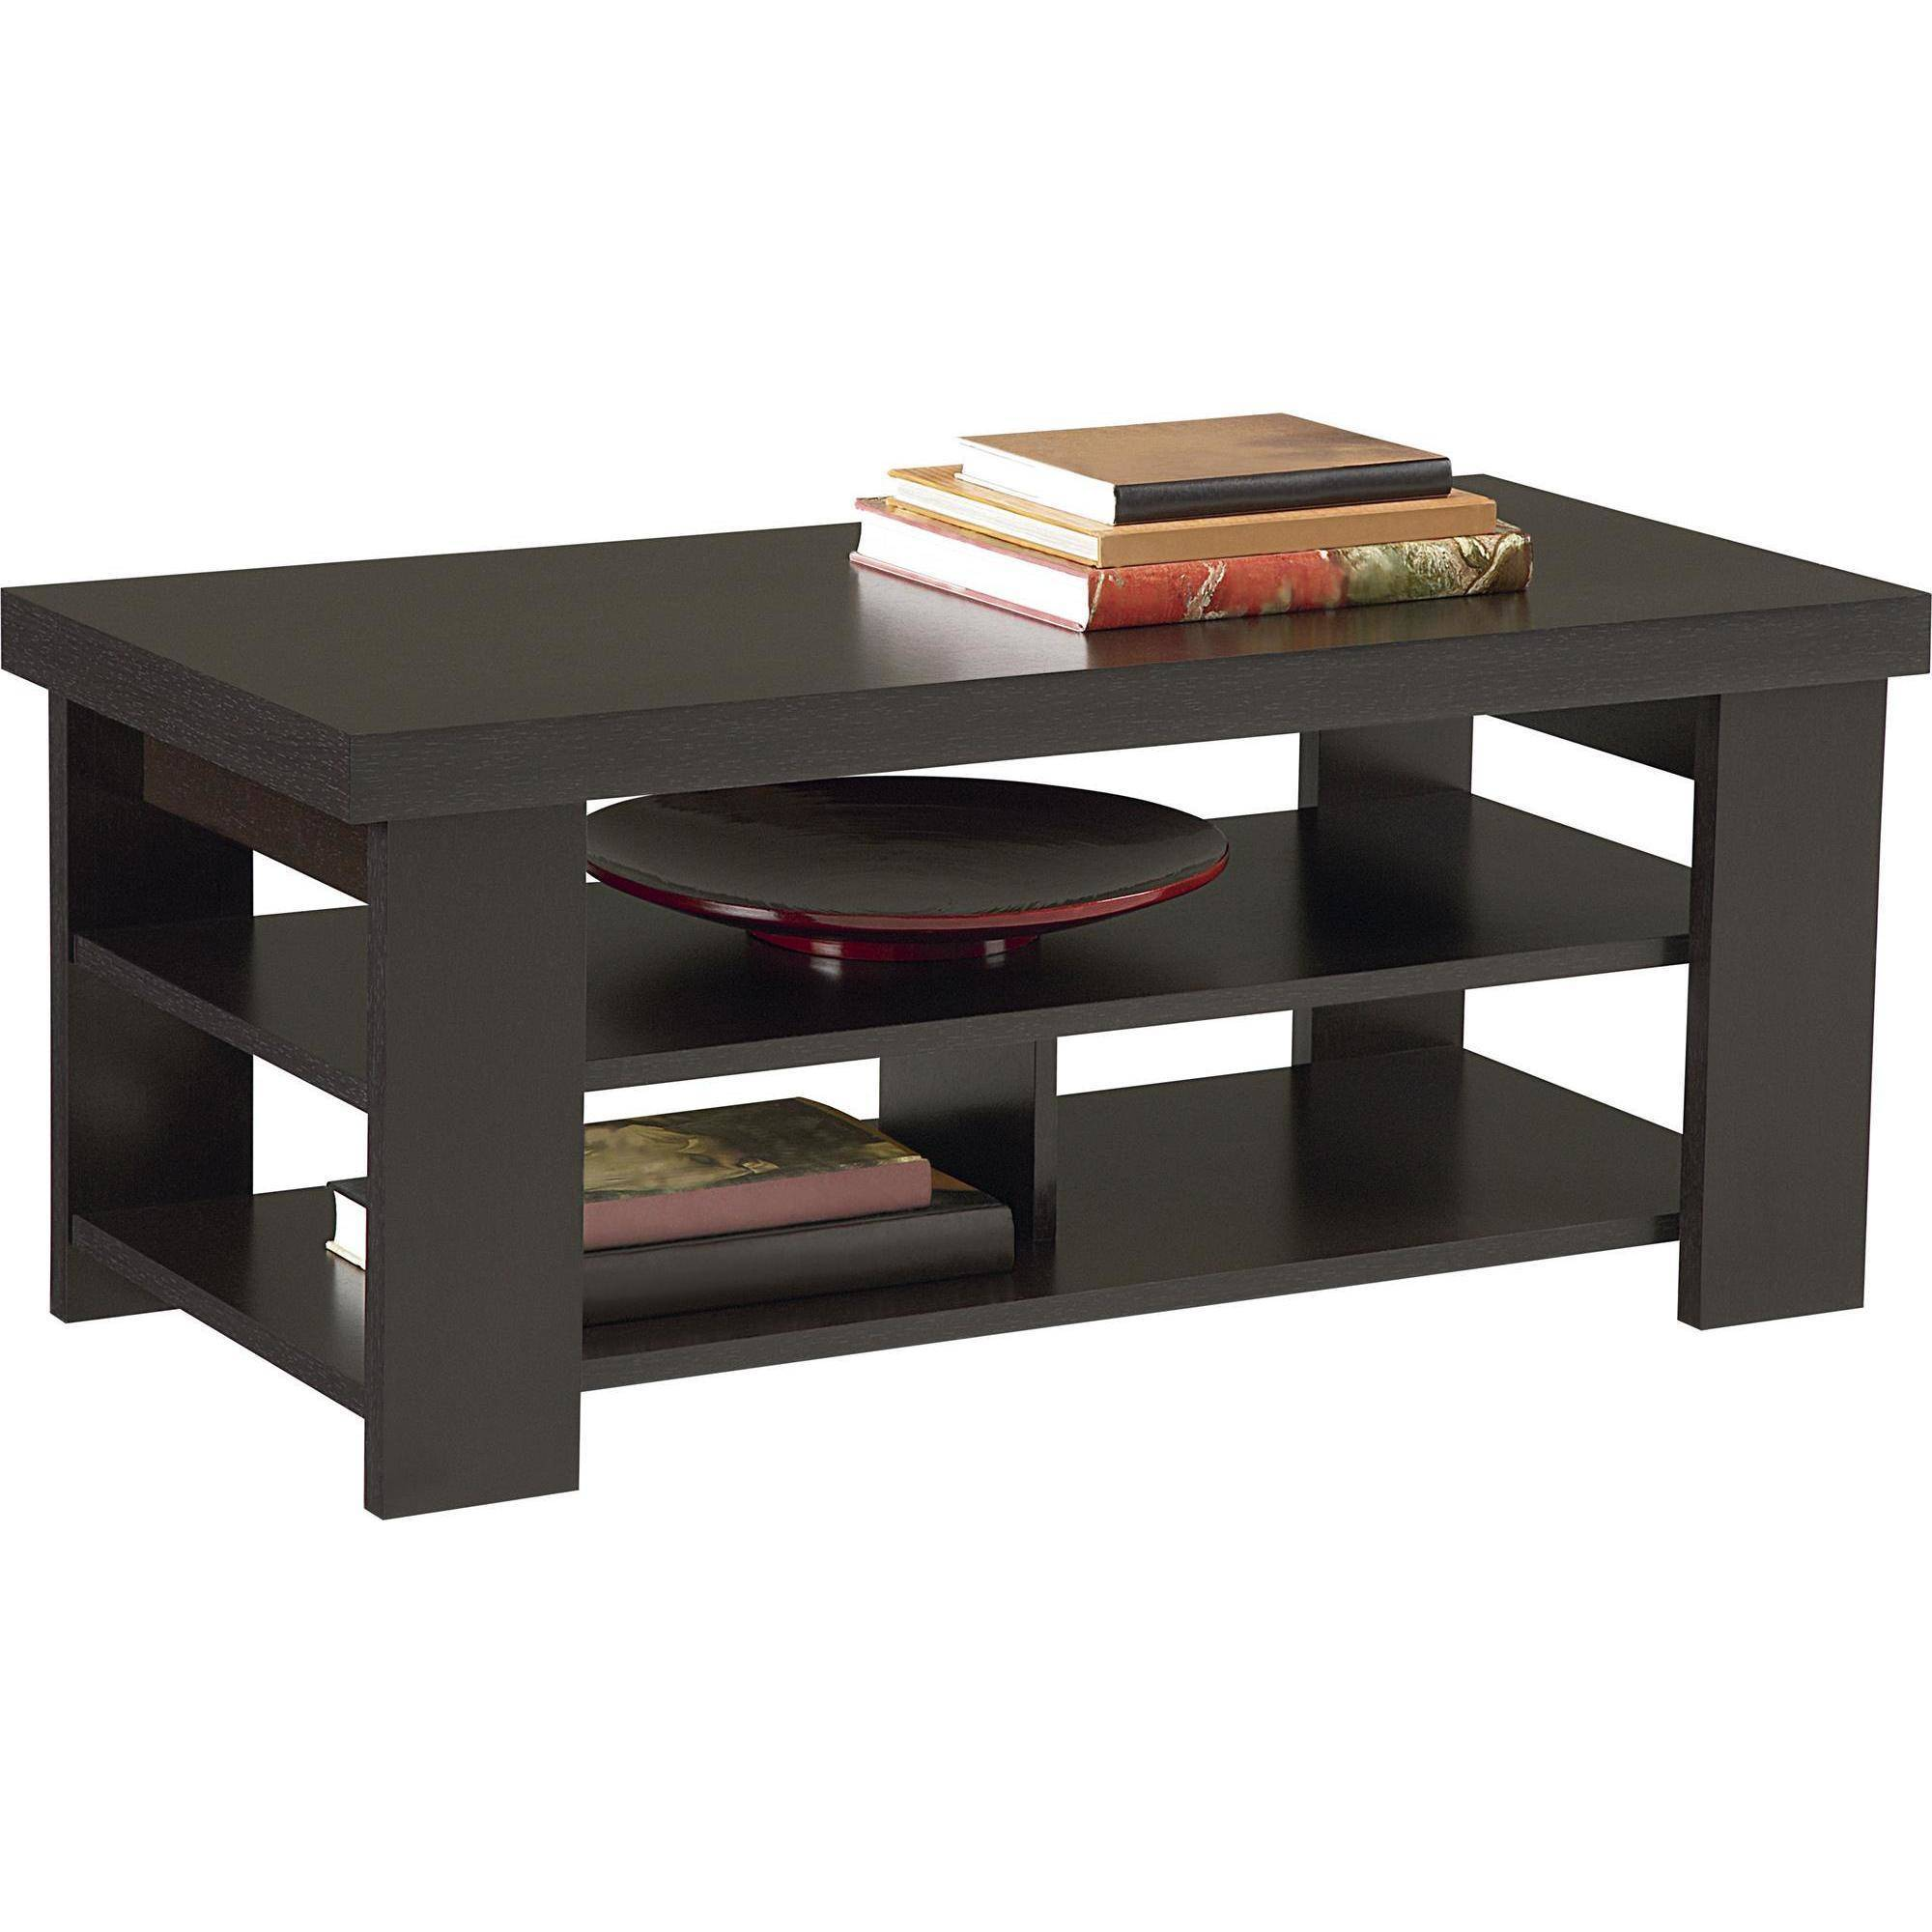 Larkin Coffee Table, Sofa Table U0026 End Table Value Bundle, Espresso    Walmart.com